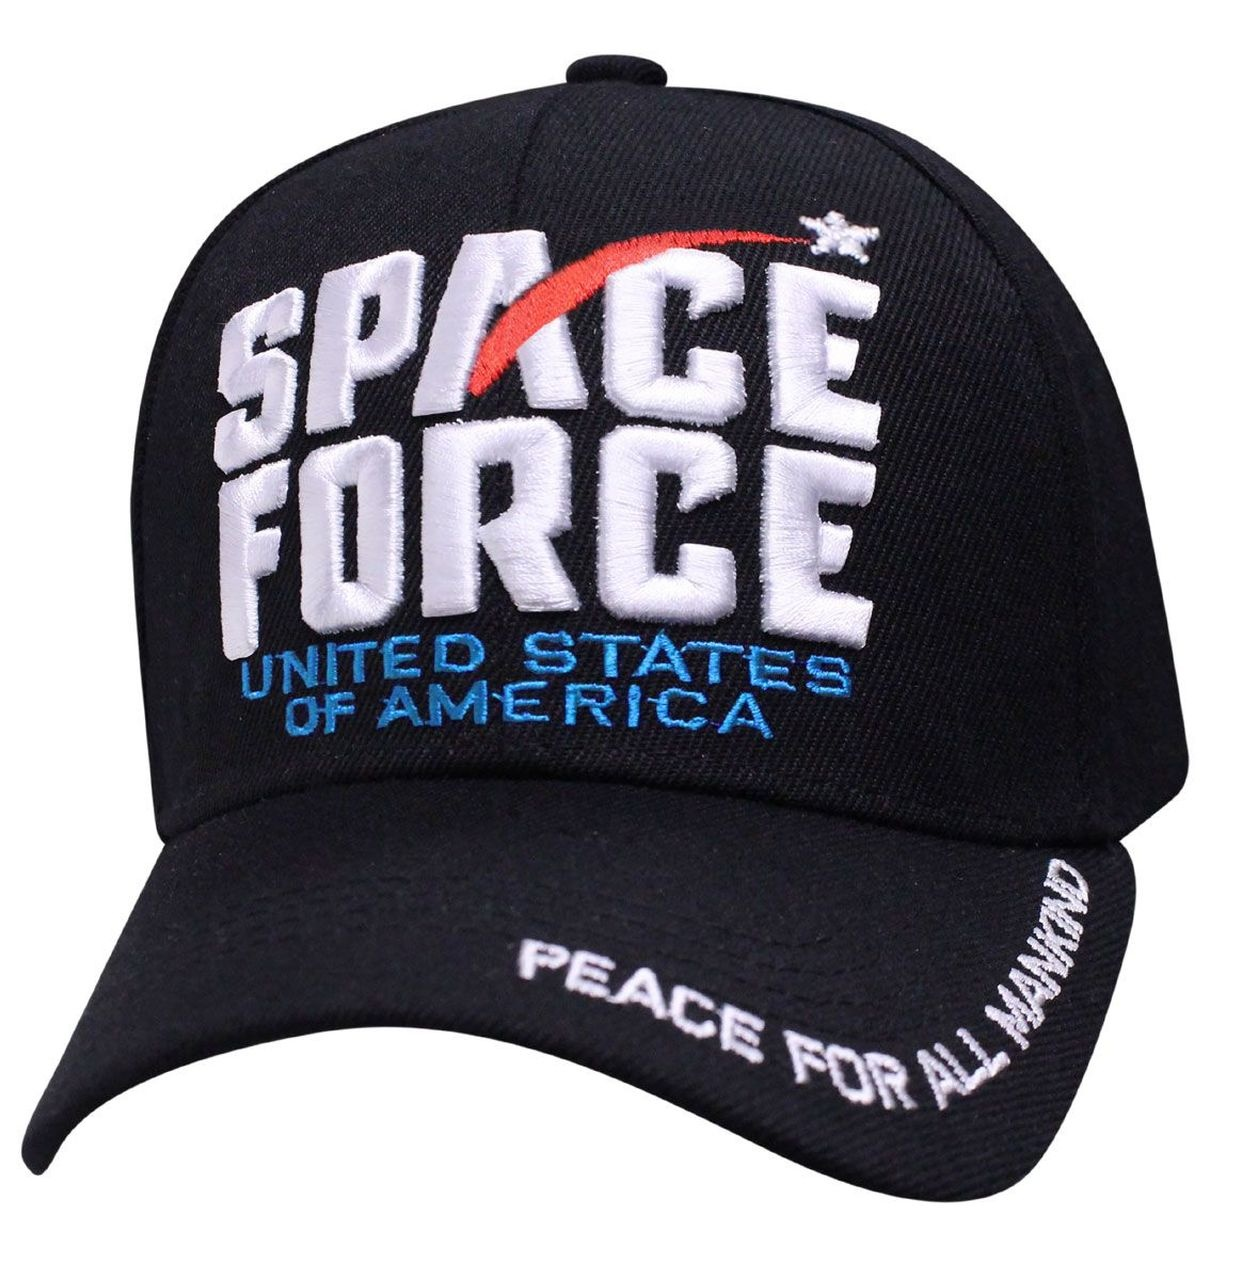 Cap Smith Space Force USA - Peace for All Mankind 3D Hat